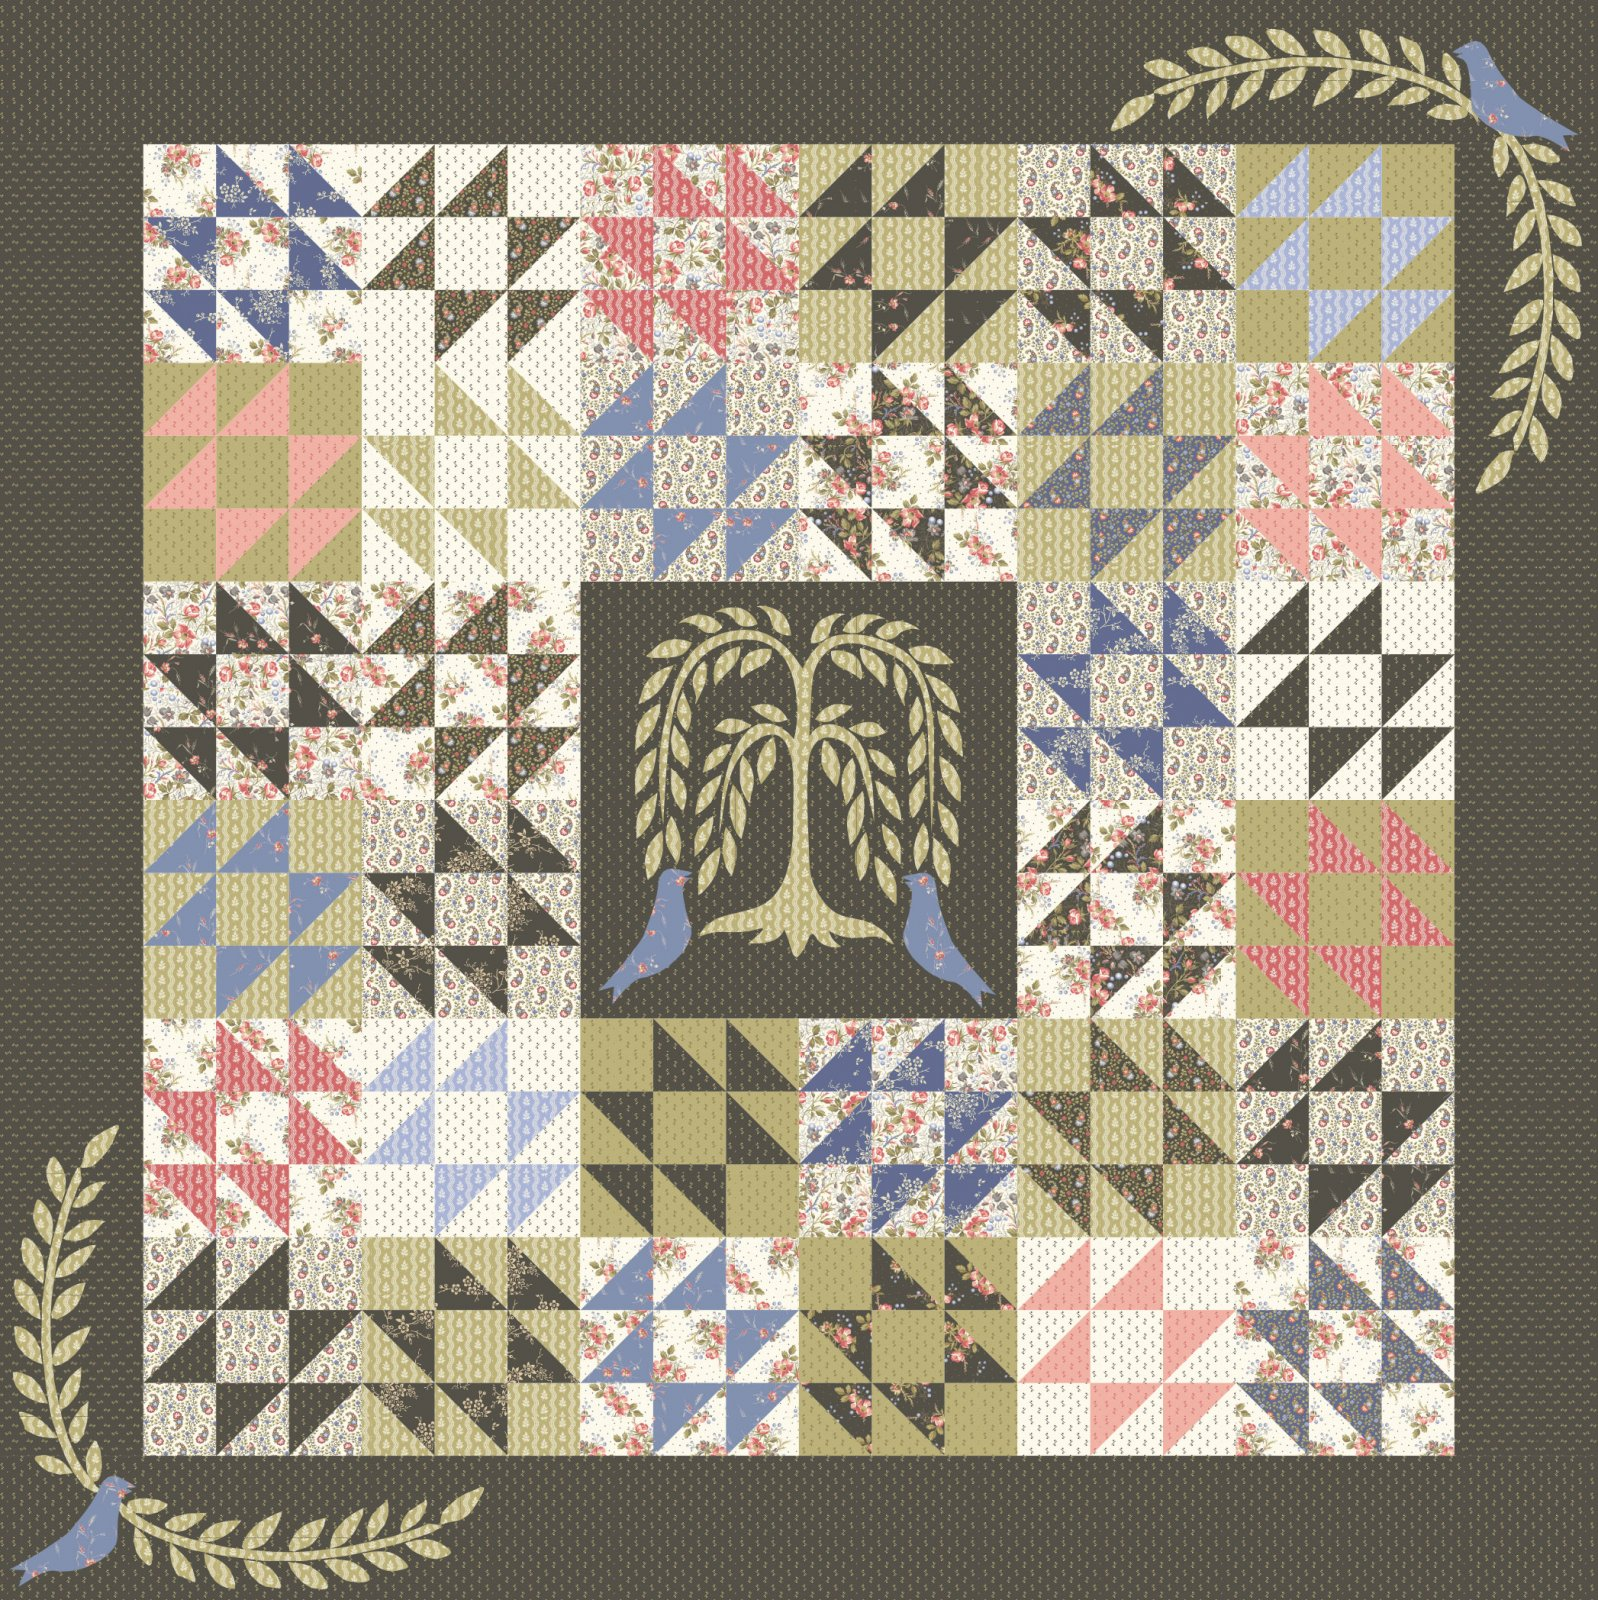 52021QK Crows in the Corner Quilt Kit in Annie